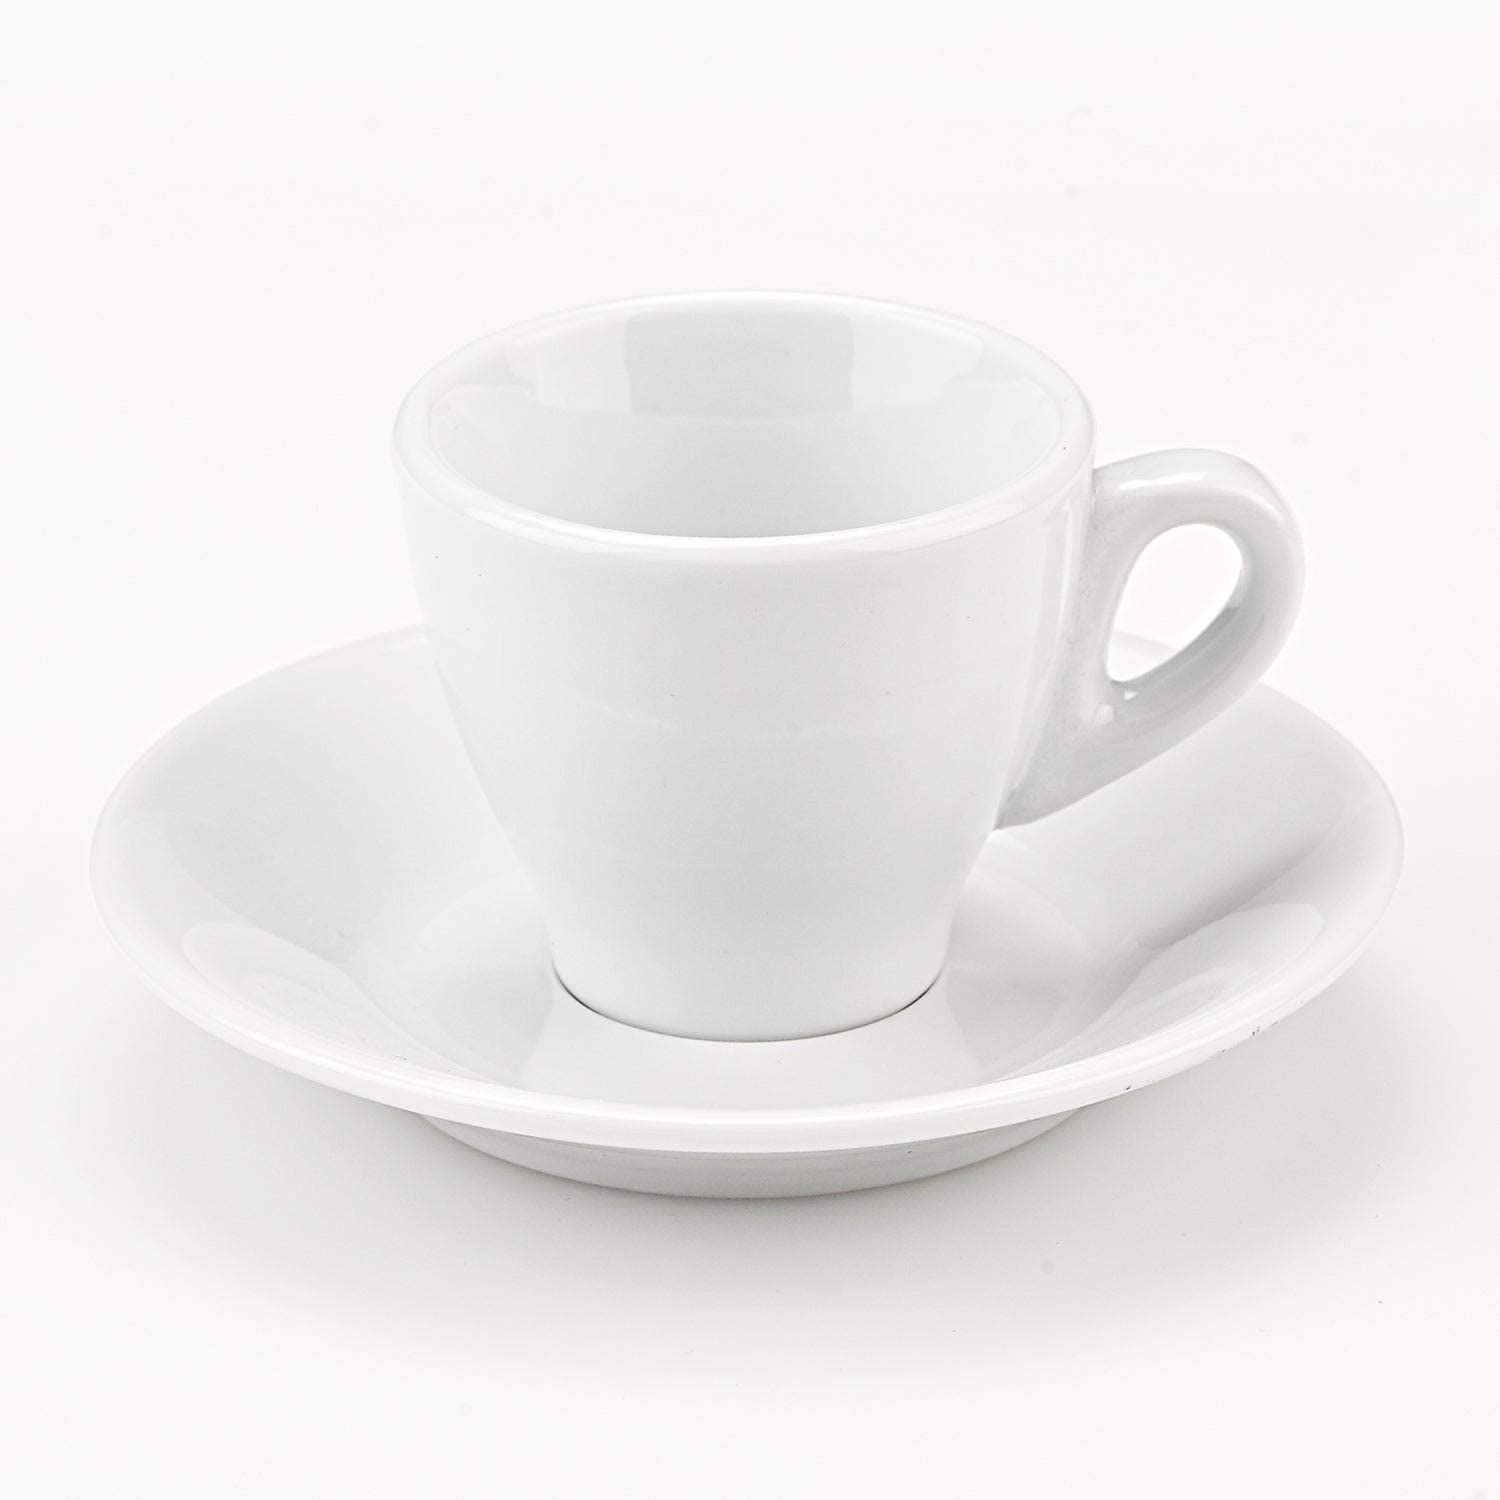 Lorren Home Trend Set of 6 Porcelain Espresso Cups in White, by s